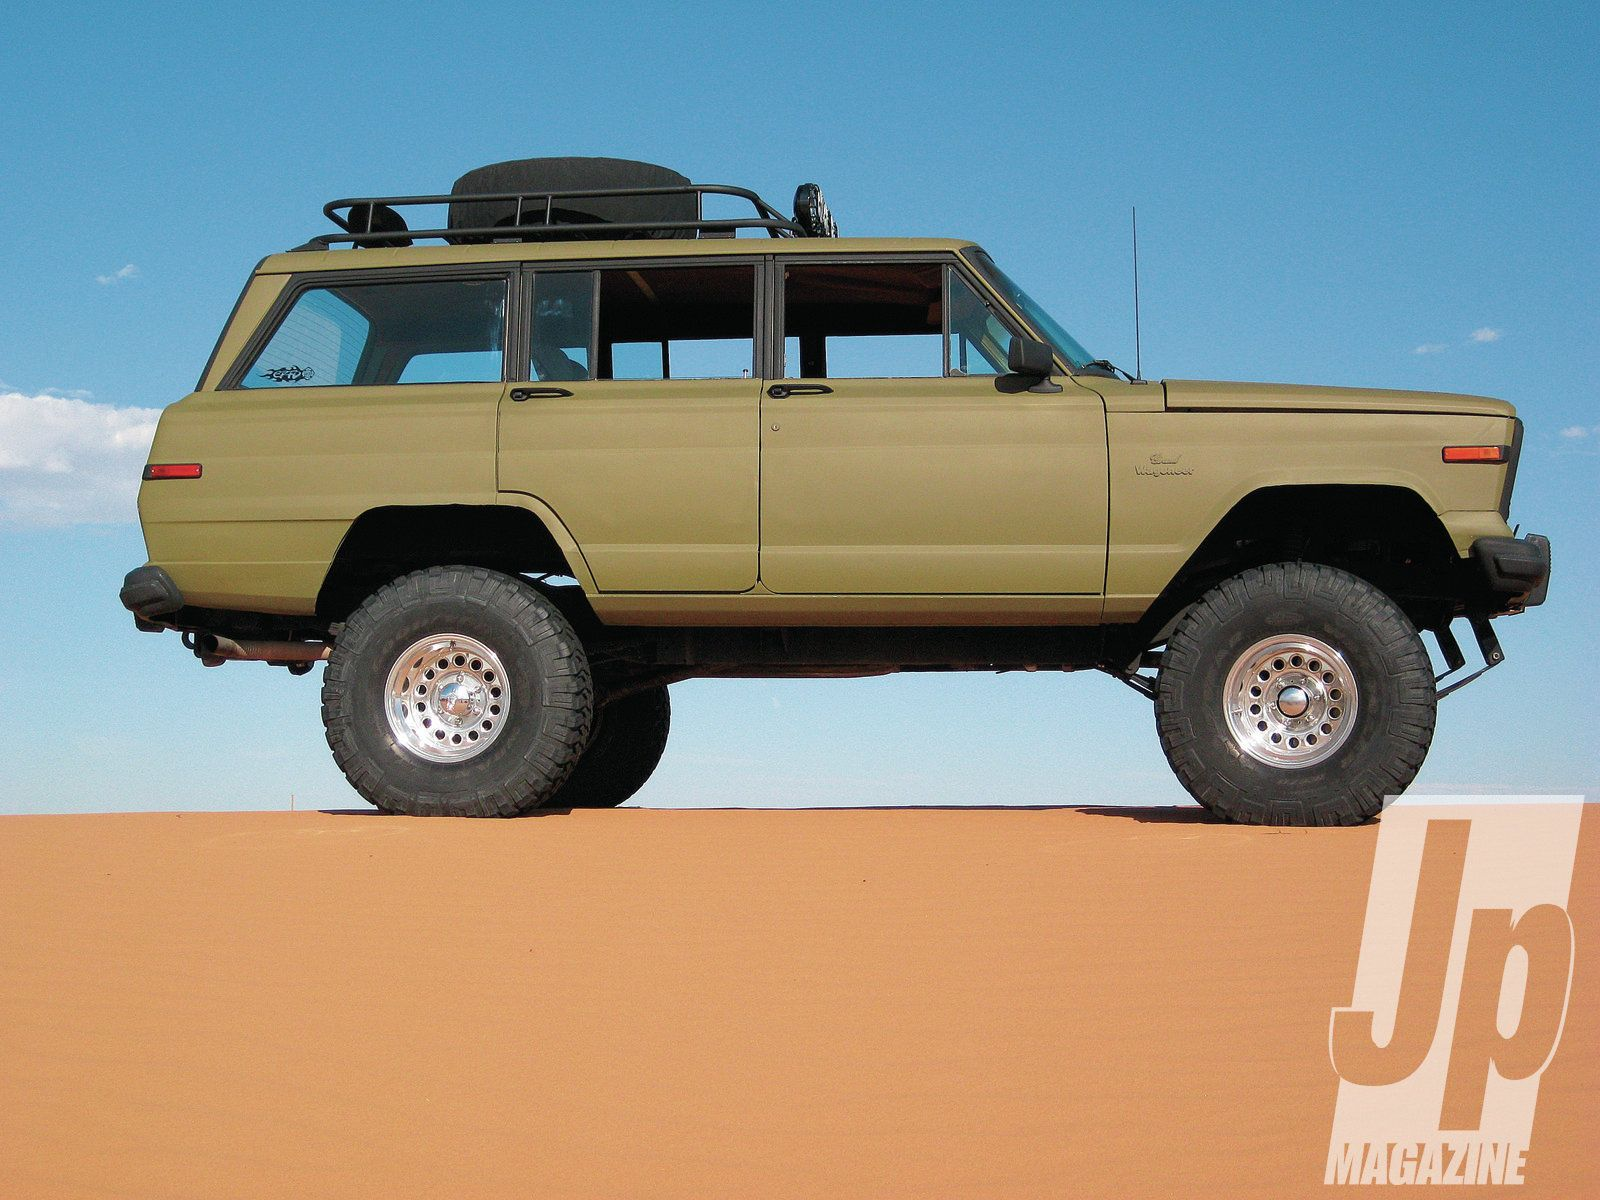 Jeep Grand Wagoneers Full Professional Ground Up >> Grand Wagoneer Roof Rack | The Wagon